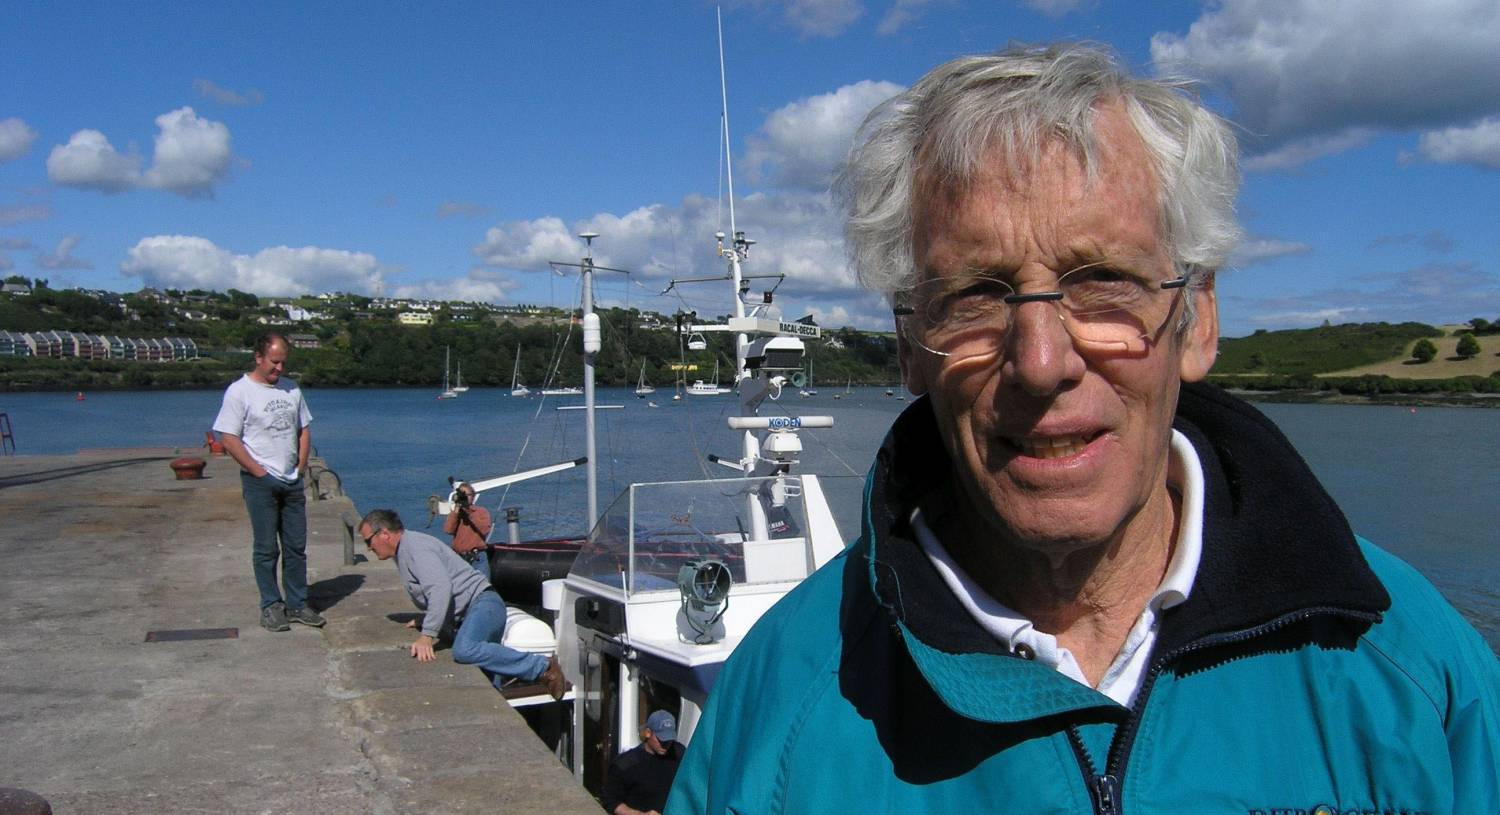 Lusitania wreck donor, Gregg Bemis, hailed as friend and benefactor of Kinsale